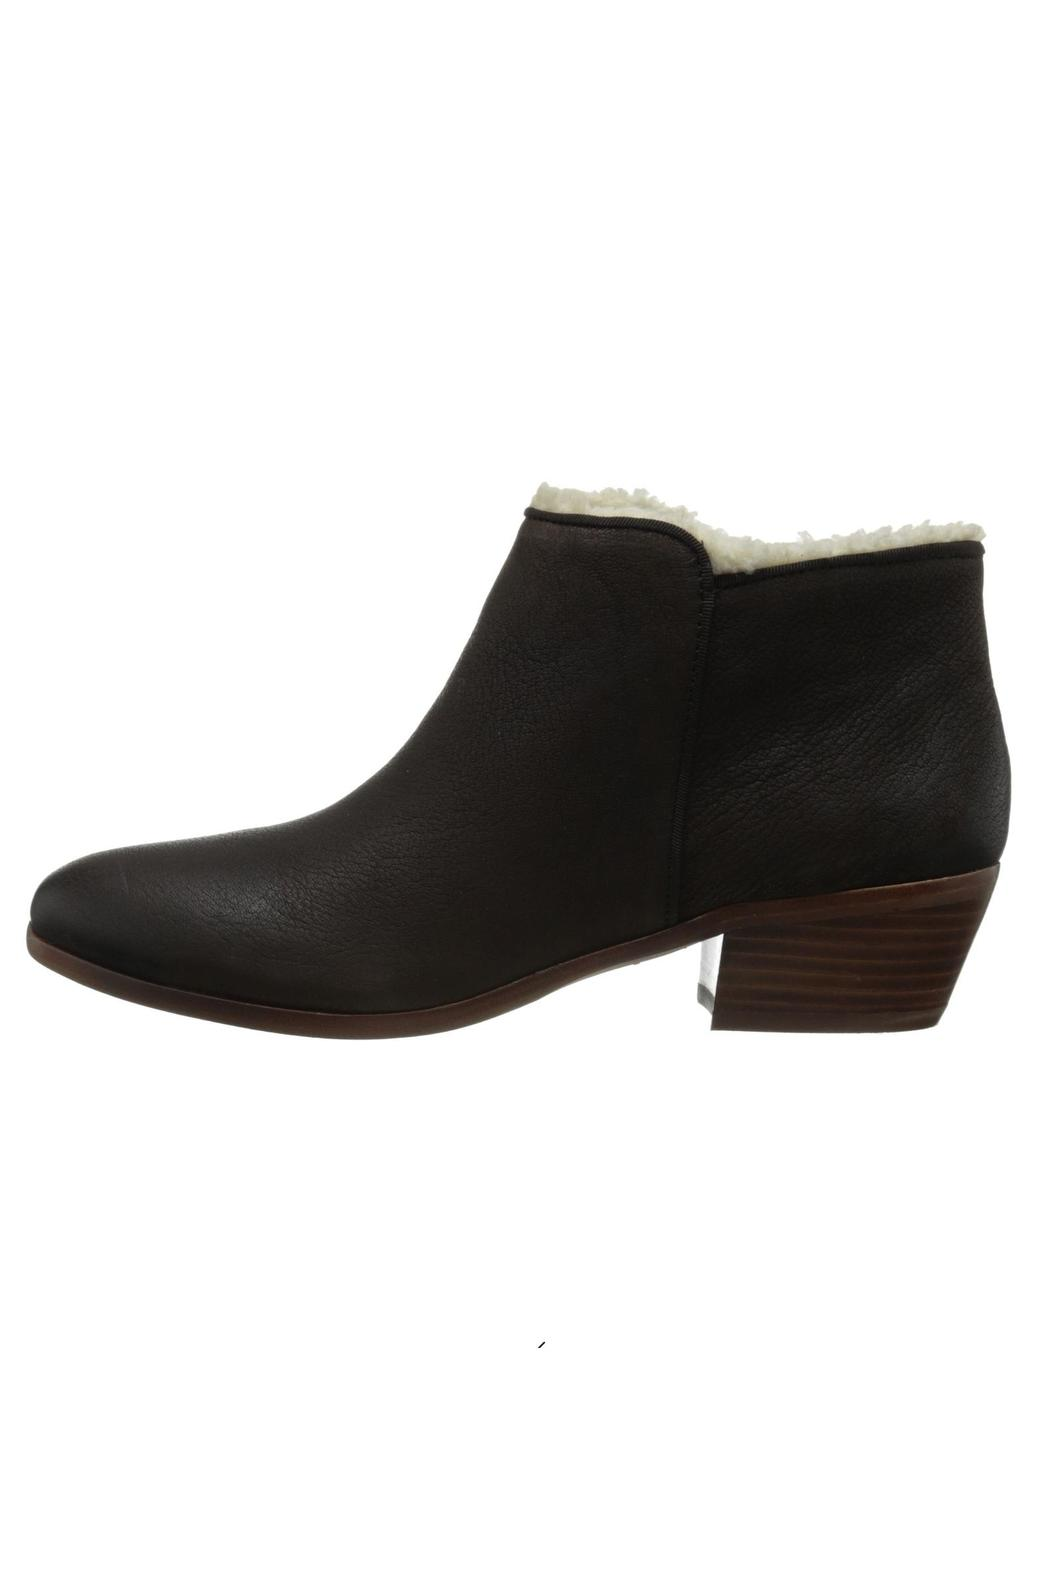 22b780079 Sam Edelman Petty Ankle Boot from Edmonton by Modern Sole — Shoptiques